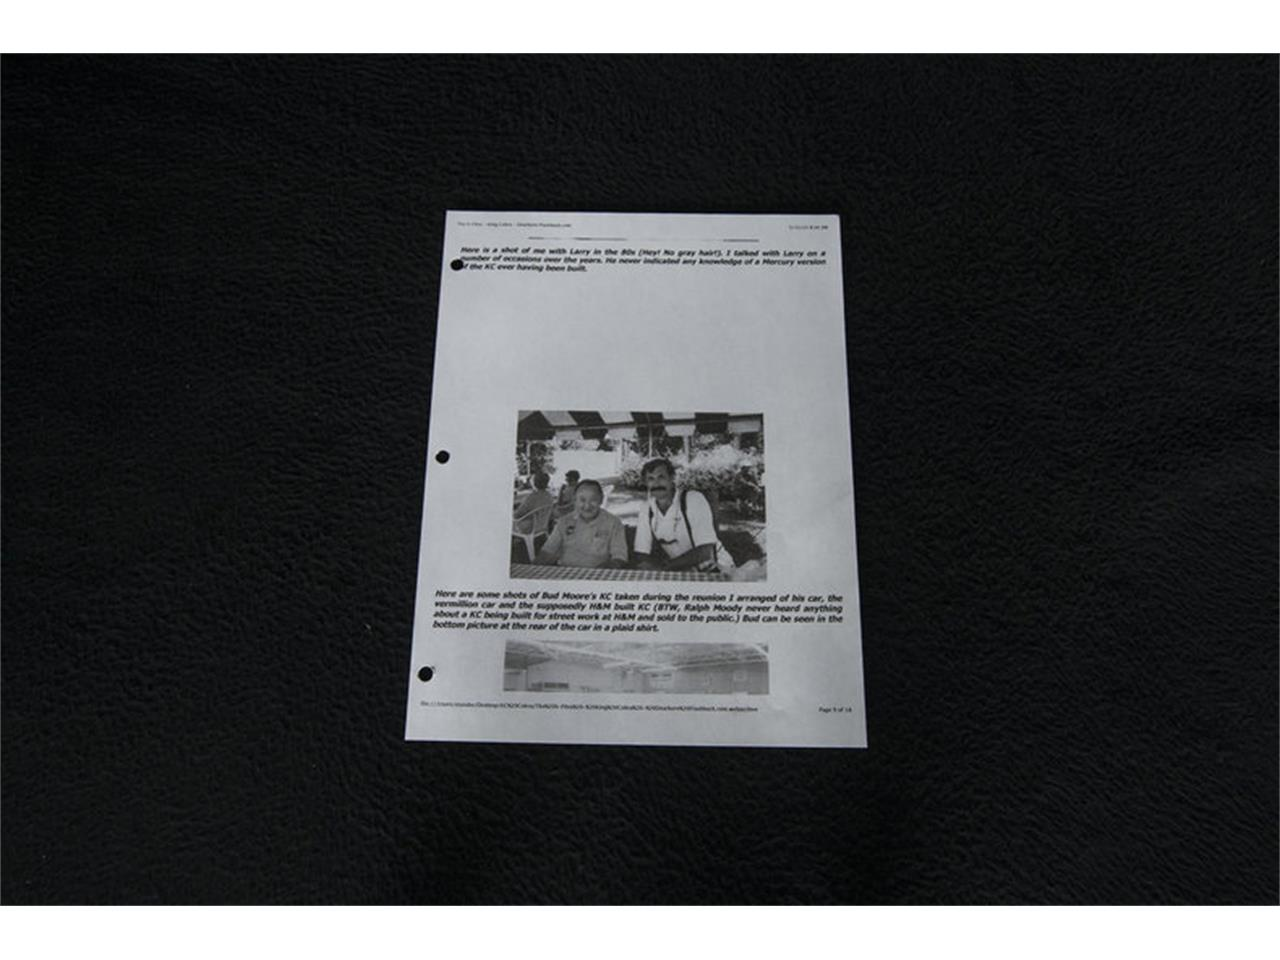 Large Picture of 1970 Ford Torino located in North Carolina - $429,900.00 - EWI3